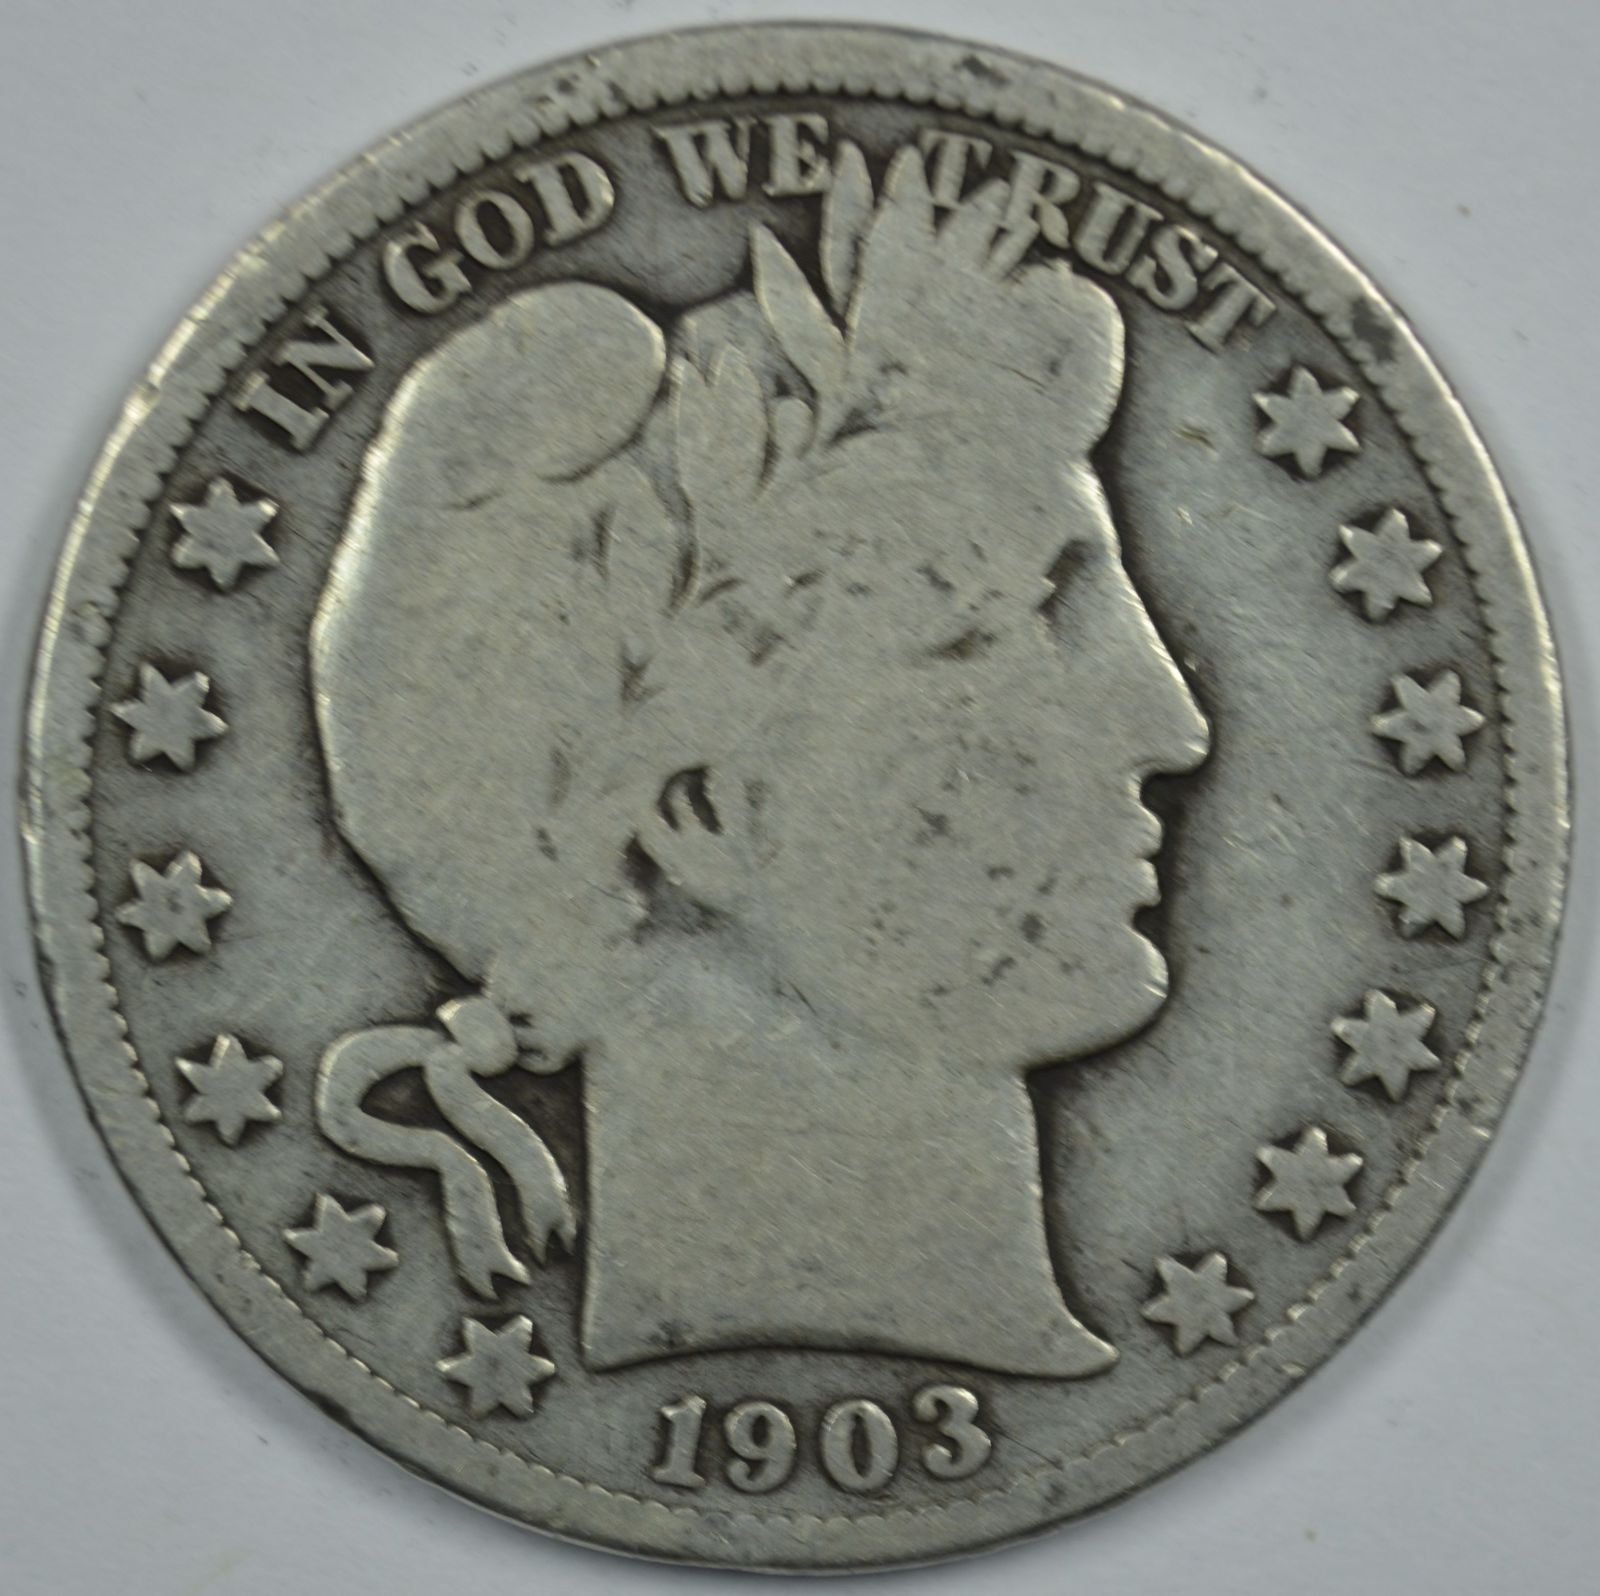 Primary image for 1903 O Barber circulated silver half